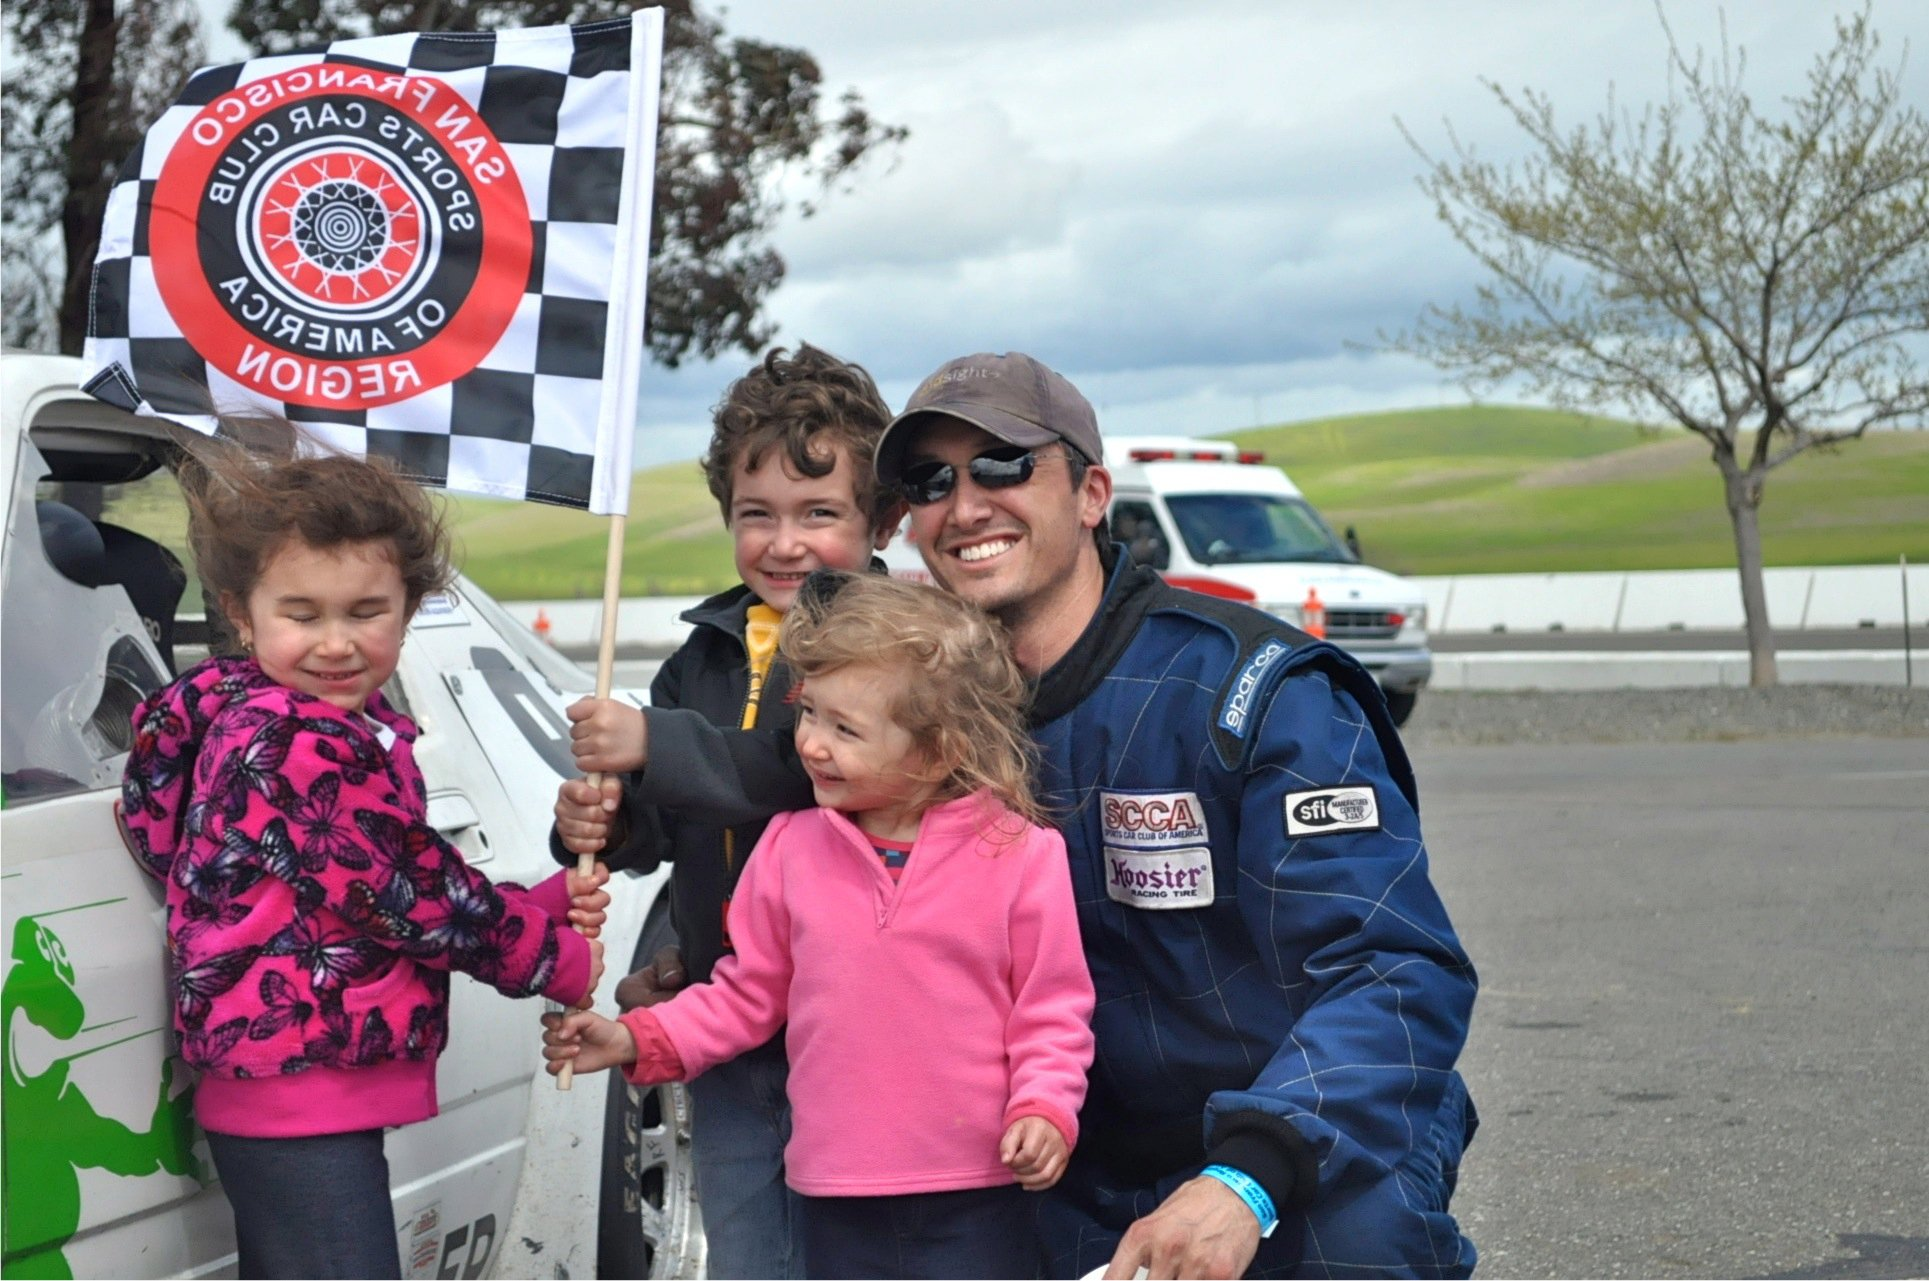 Josh at the racetrack with his kids.